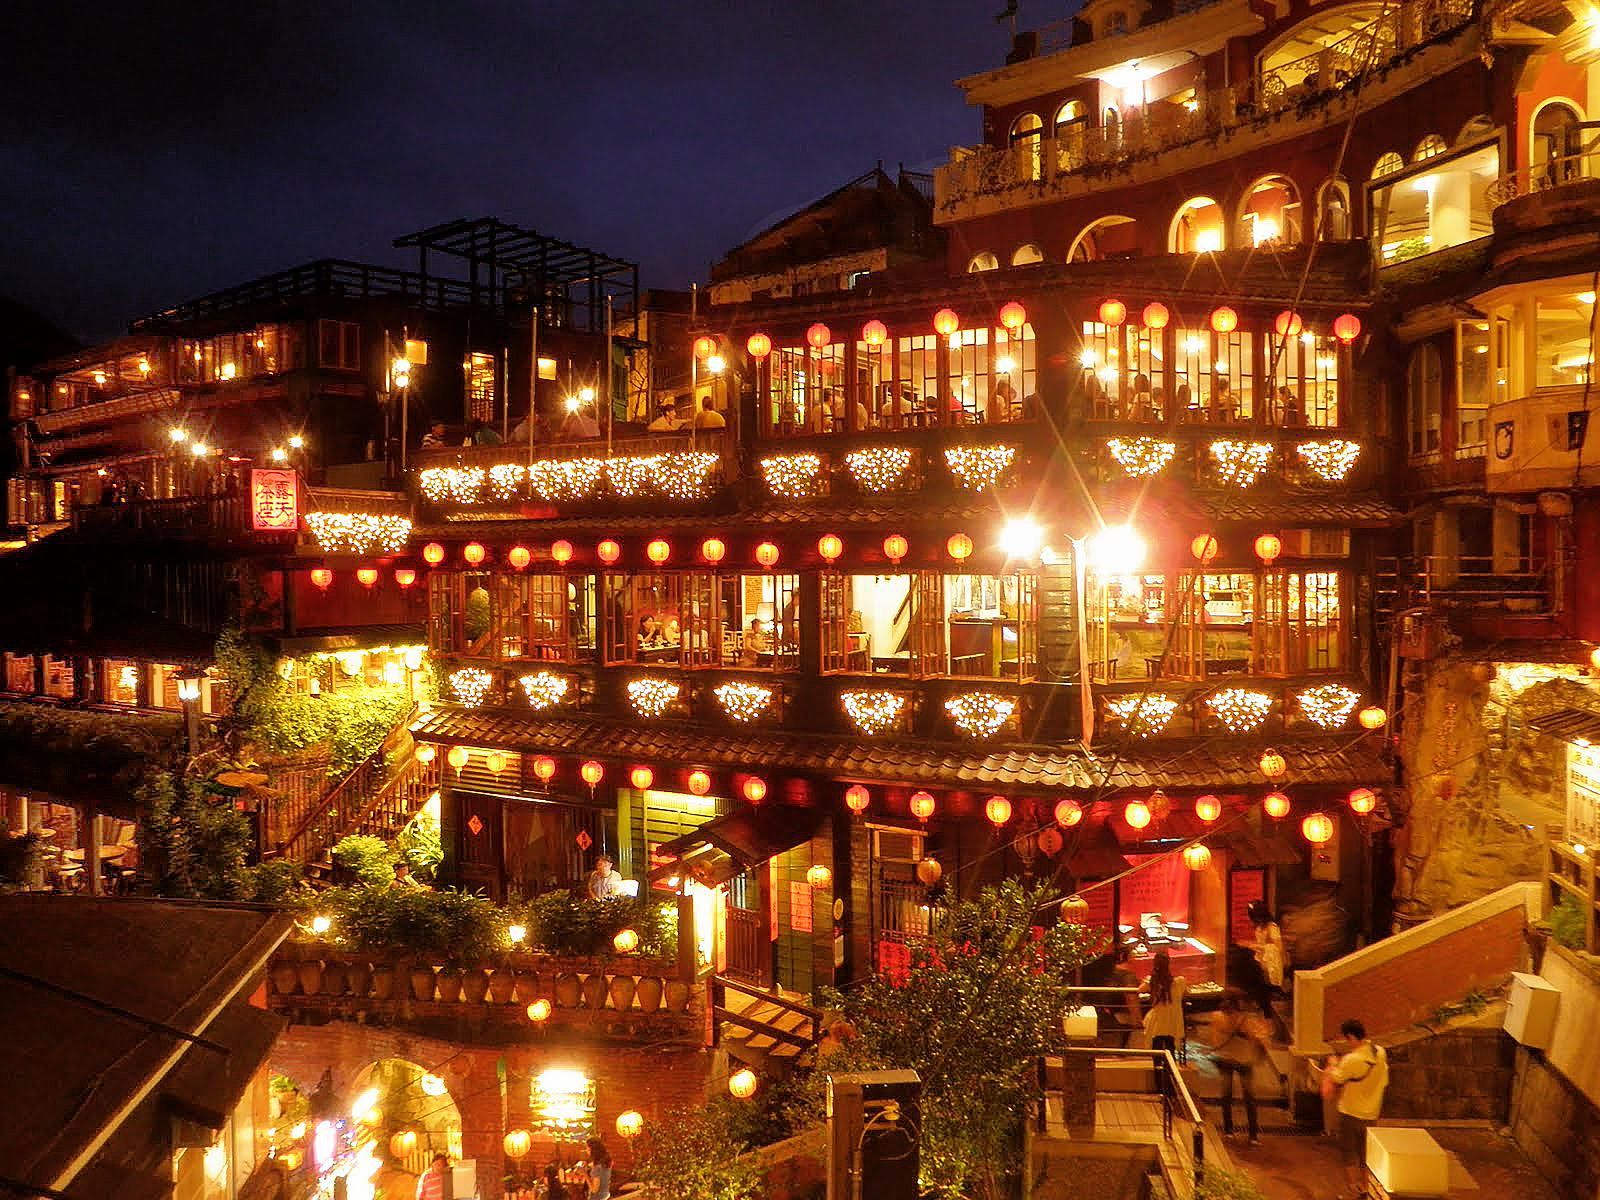 Jiufen Night Scene 九份夜景 Taiwan Jiufen Was Founded During The Qing Dynasty This Small Town Was A Relatively Isolated Village Un Night Scene Visiting Taiwan